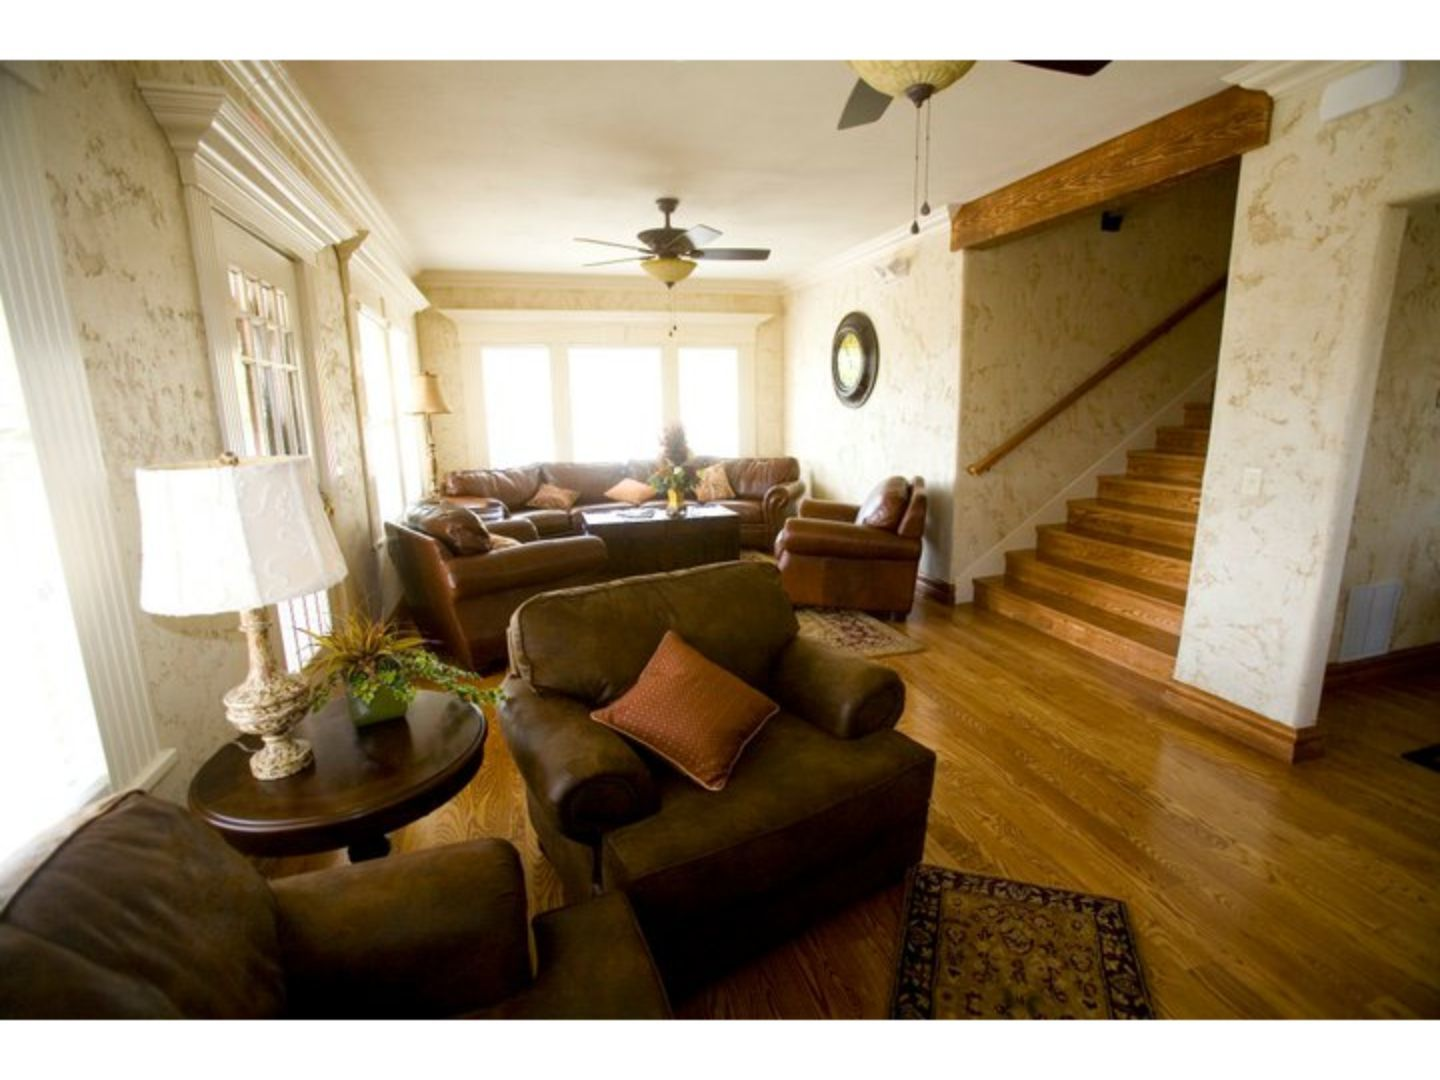 A living room filled with furniture and a fireplace at The Branson House.